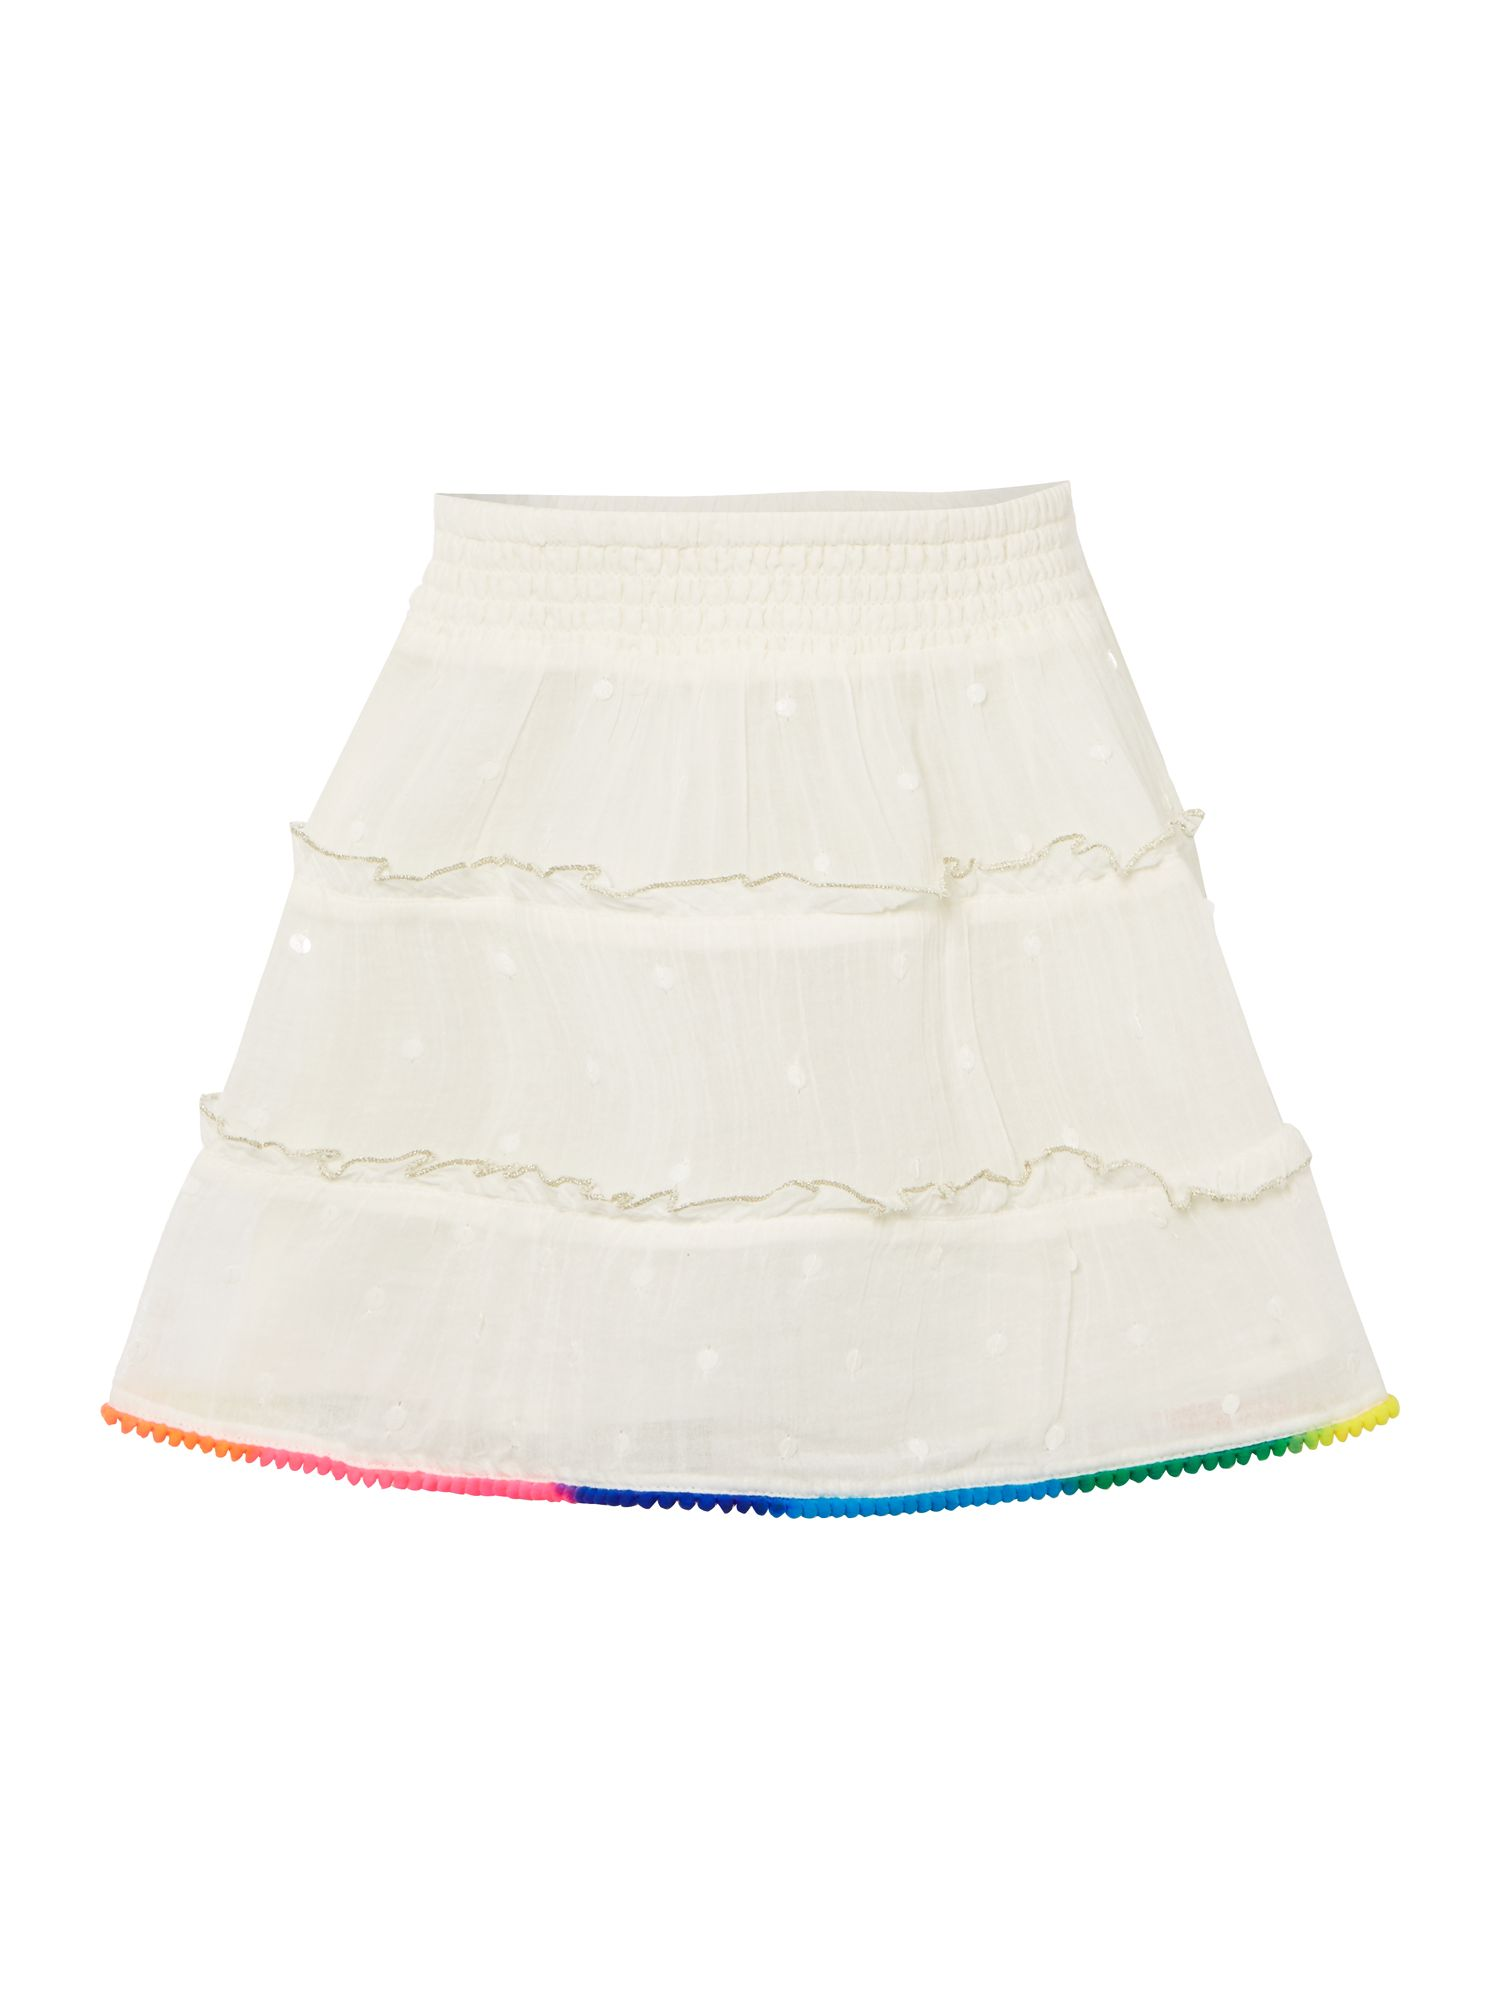 Billieblush Billieblush Girls Sequin Crepe Skirt, Ivory